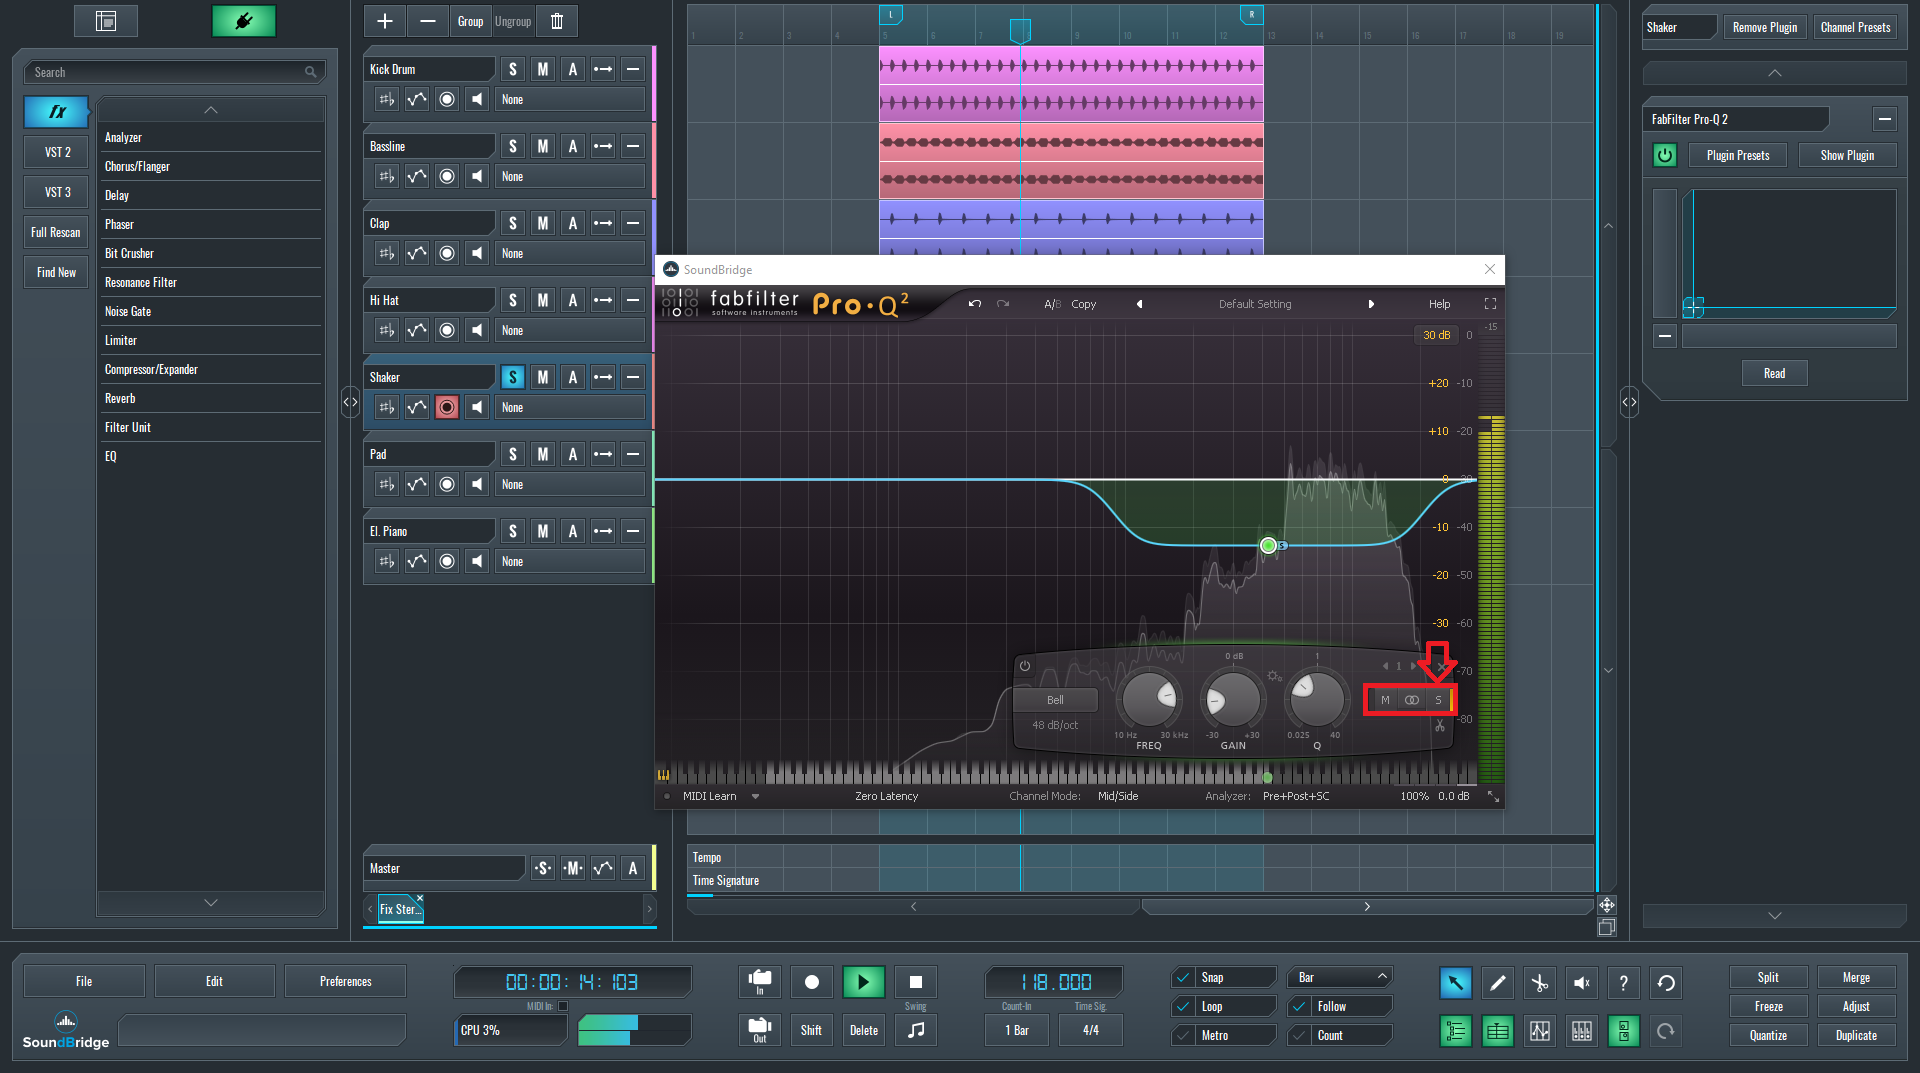 Showing Mid, Stereo, and Side options in FabFilter's Pro-Q2 for Mid-Side EQ article.